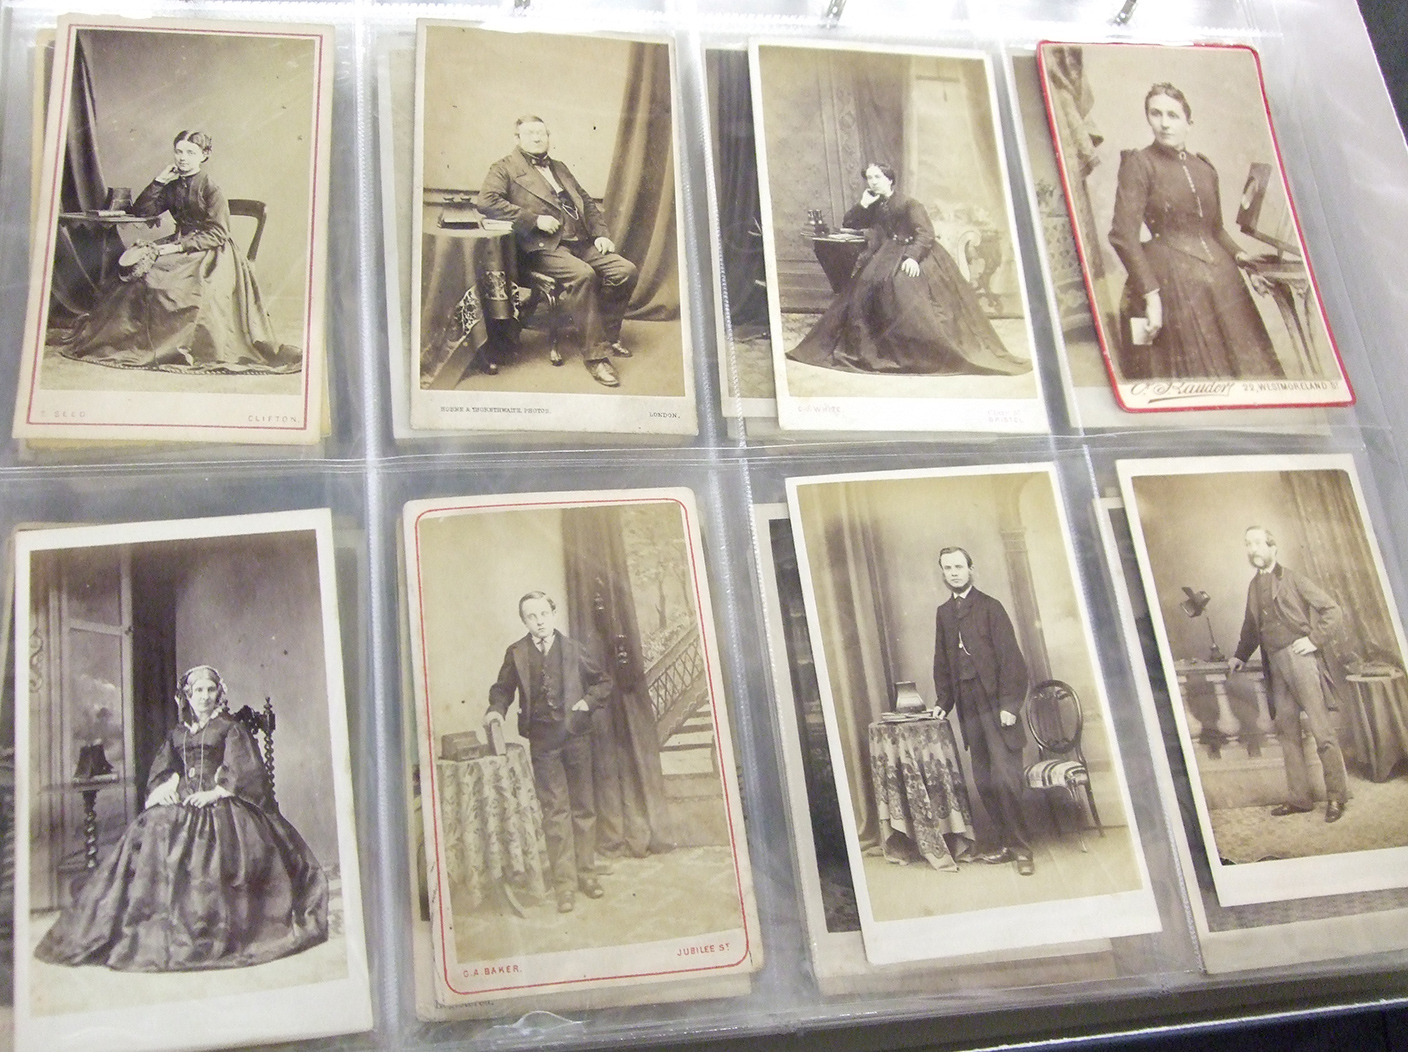 Carte-de-visites in the Howarth Loomes collection